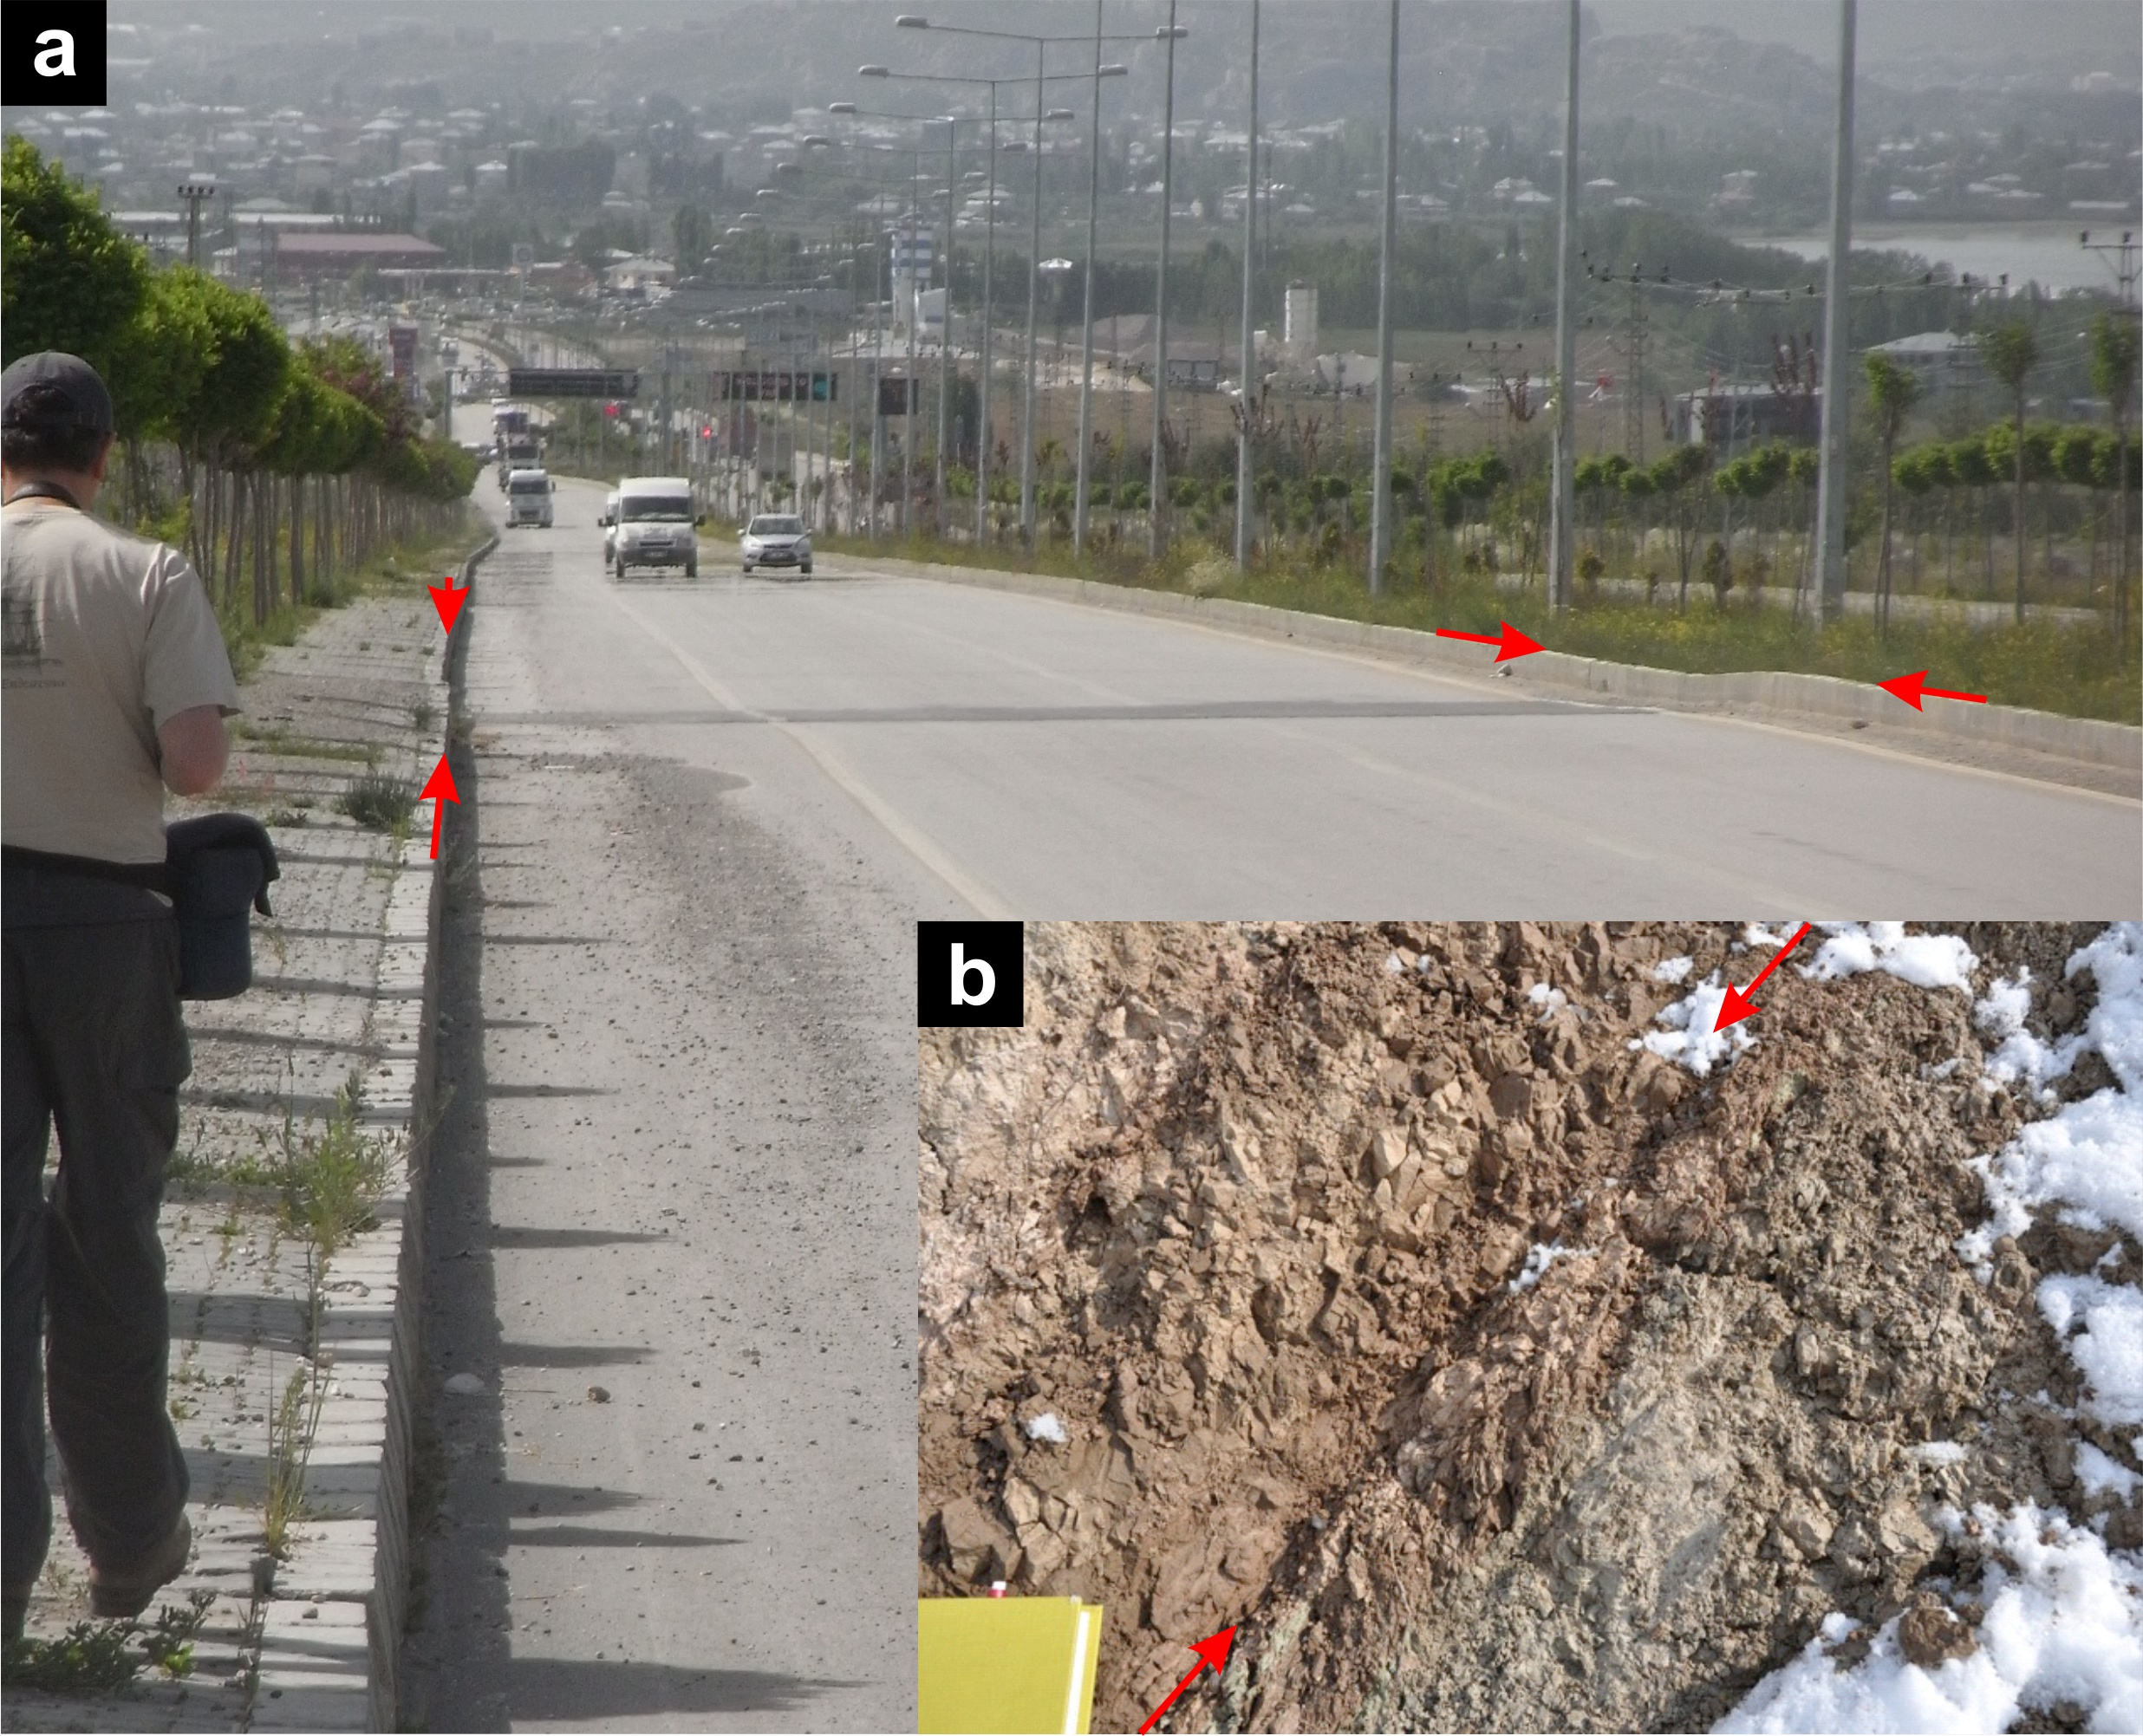 Figure 3:  (a) The slip motion on this fault at the surface is very small for such a large earthquake. The previously straight kerbstone moved a few centimetres to the left and down on the south side by less than 10 cm (red arrows). The small movements of the fault at the surface indicate most of the slip in the earthquake remained deeply buried. Photo Credit: John Elliott, June 2013. (b) Image of the sediments in the road cutting where the fault crosses the road shown in (a). This shows a line (marked by red arrows) cutting though these soft sediments that has been created by past motion on this fault. This fault gouge dips to the north by about 50 degrees, matching the dip of the depper fault which slipped in the 2011 earthquake and that was found from modelling the InSAR deformation data shown in figure 1. Photo Credit: Kate Scharer, November 2011.